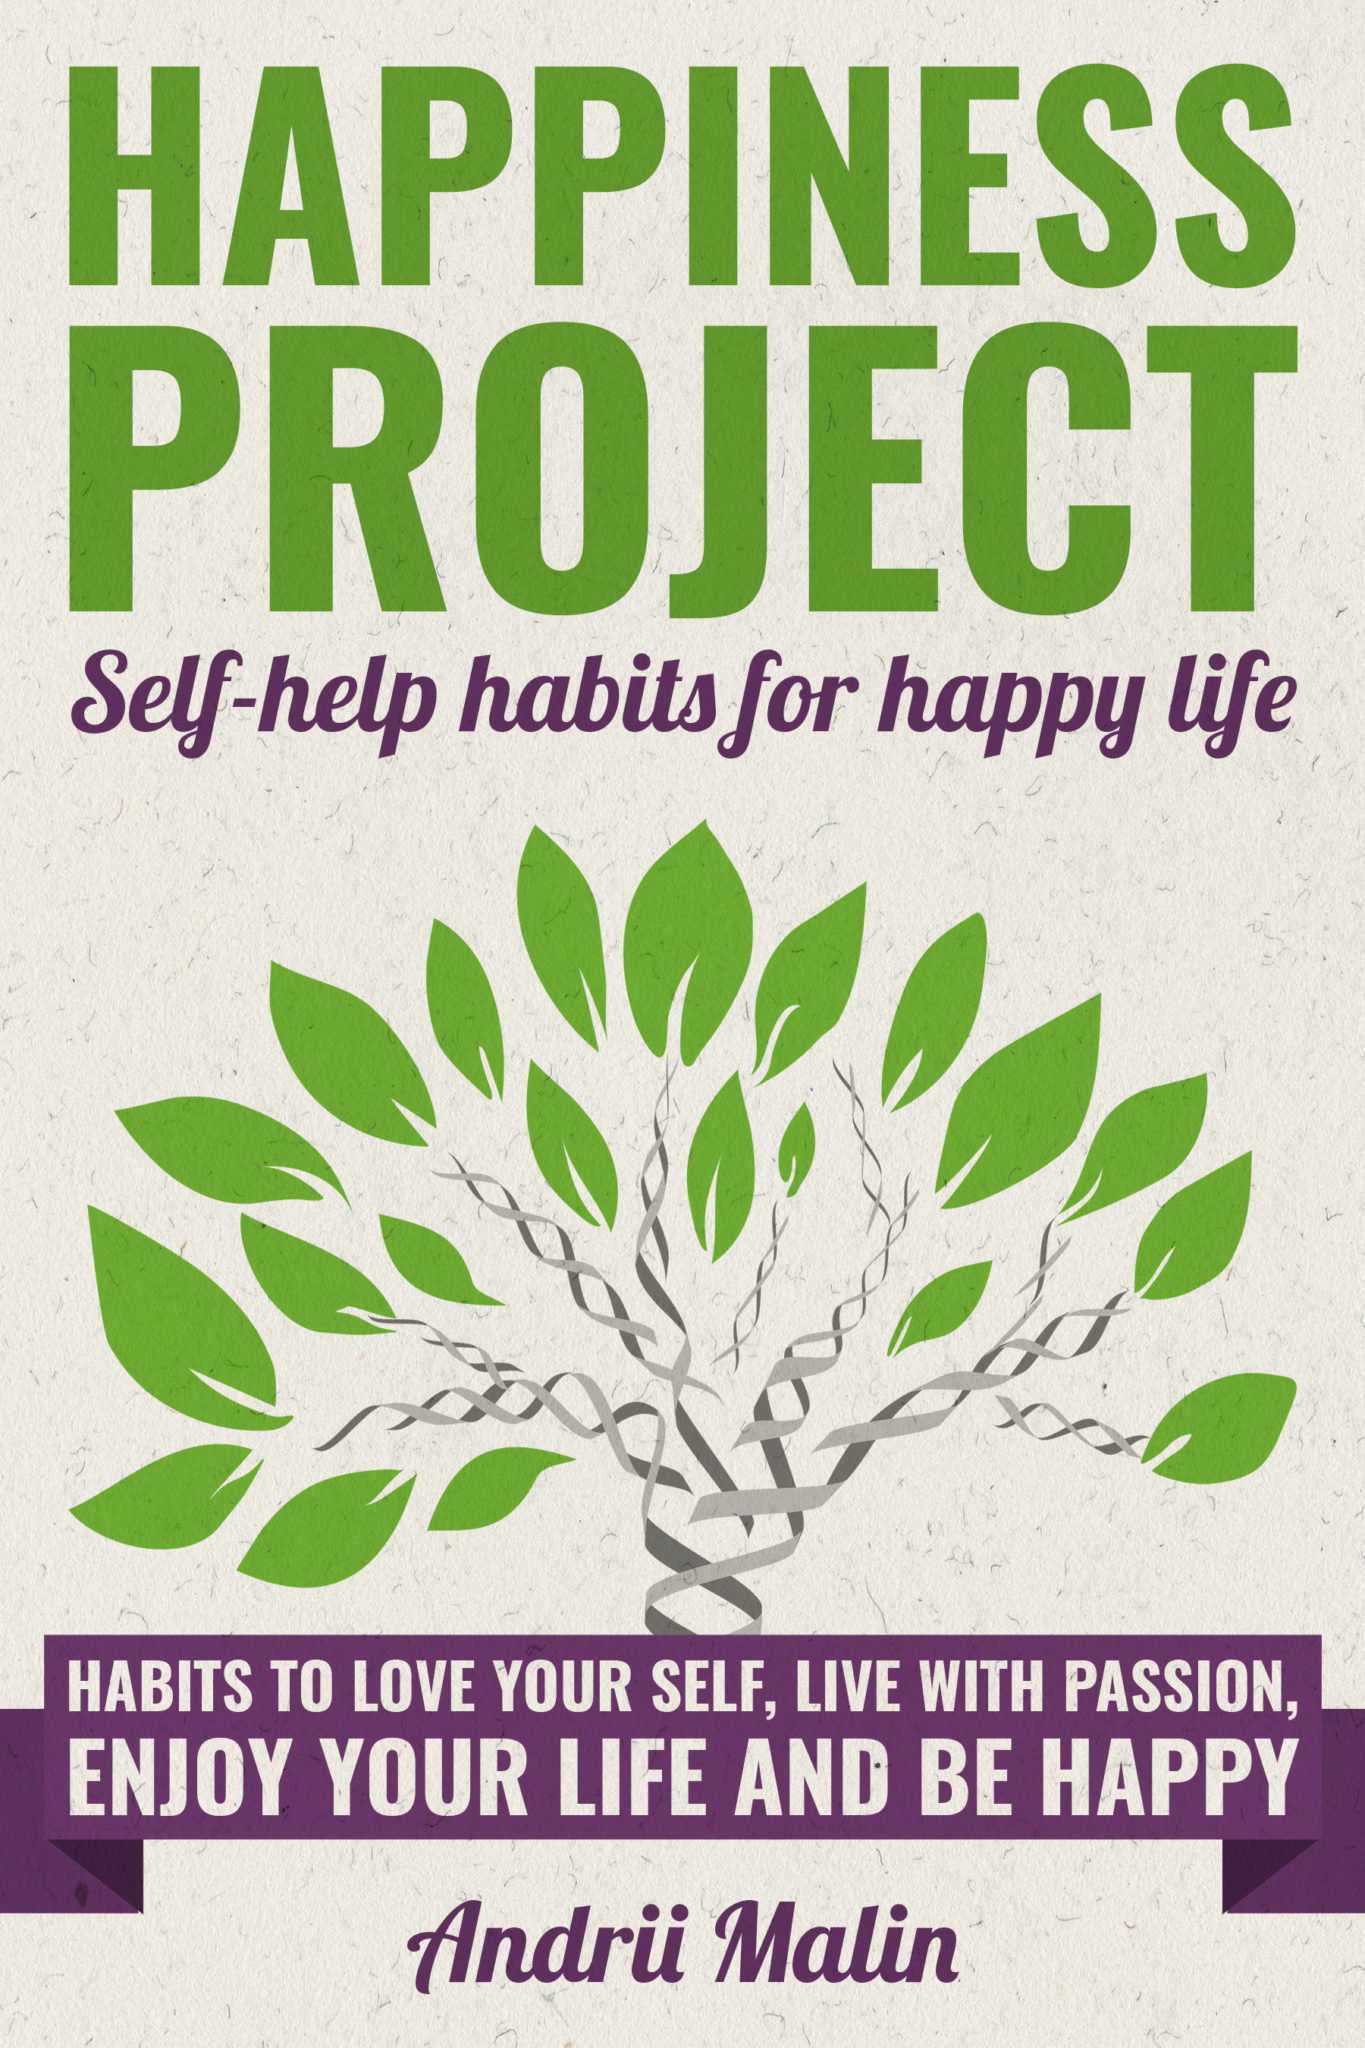 free happiness project self help habits for happy life